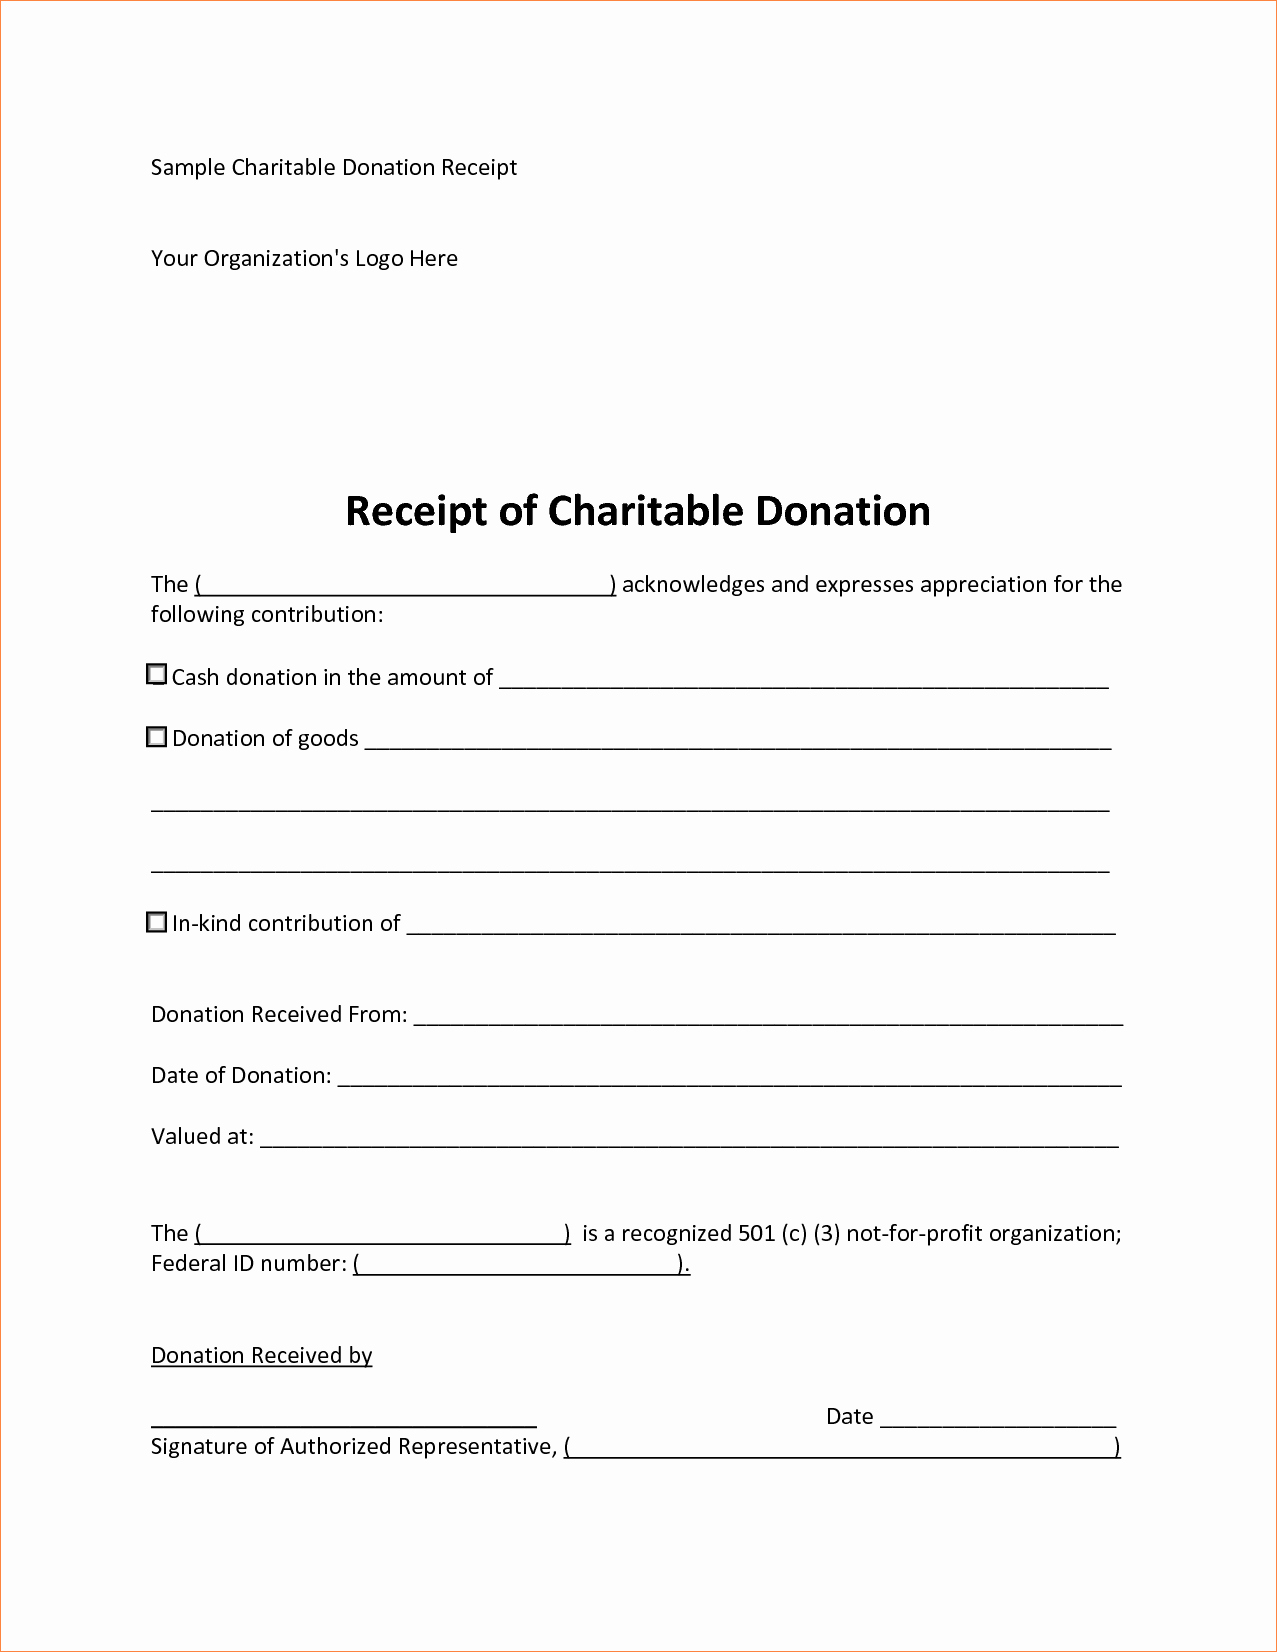 Donation Receipt Template for 501c3 Luxury 5 Sample Donation Receipt